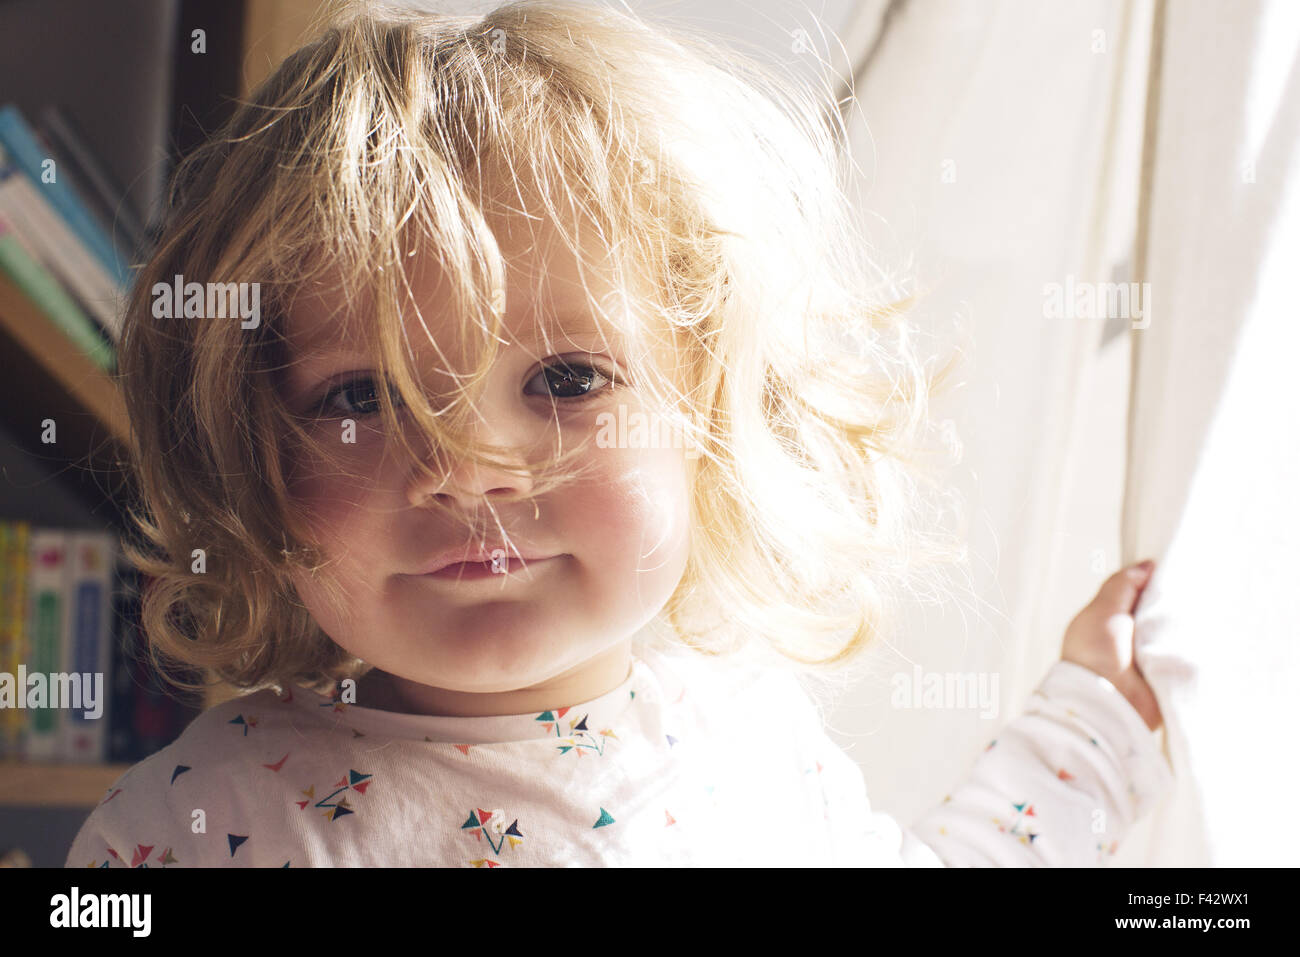 Little girl with messy hair, portrait - Stock Image